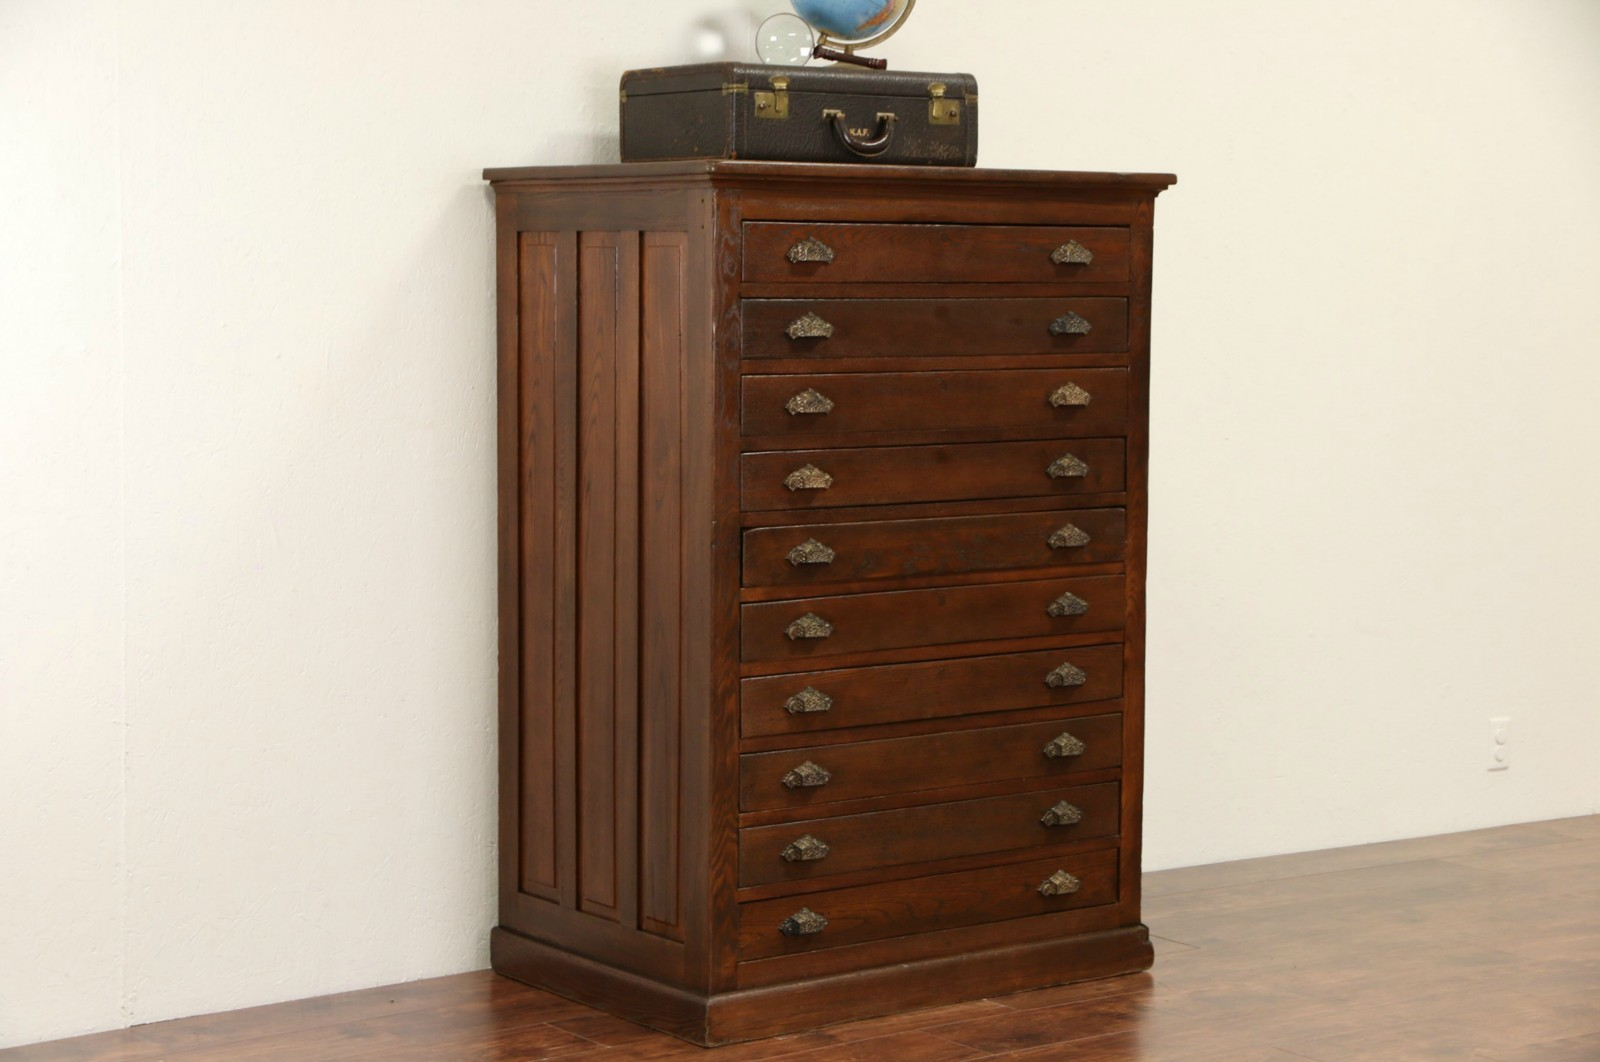 Sold Map Chest Or Drawing File Cabinet 1900 Oak 10